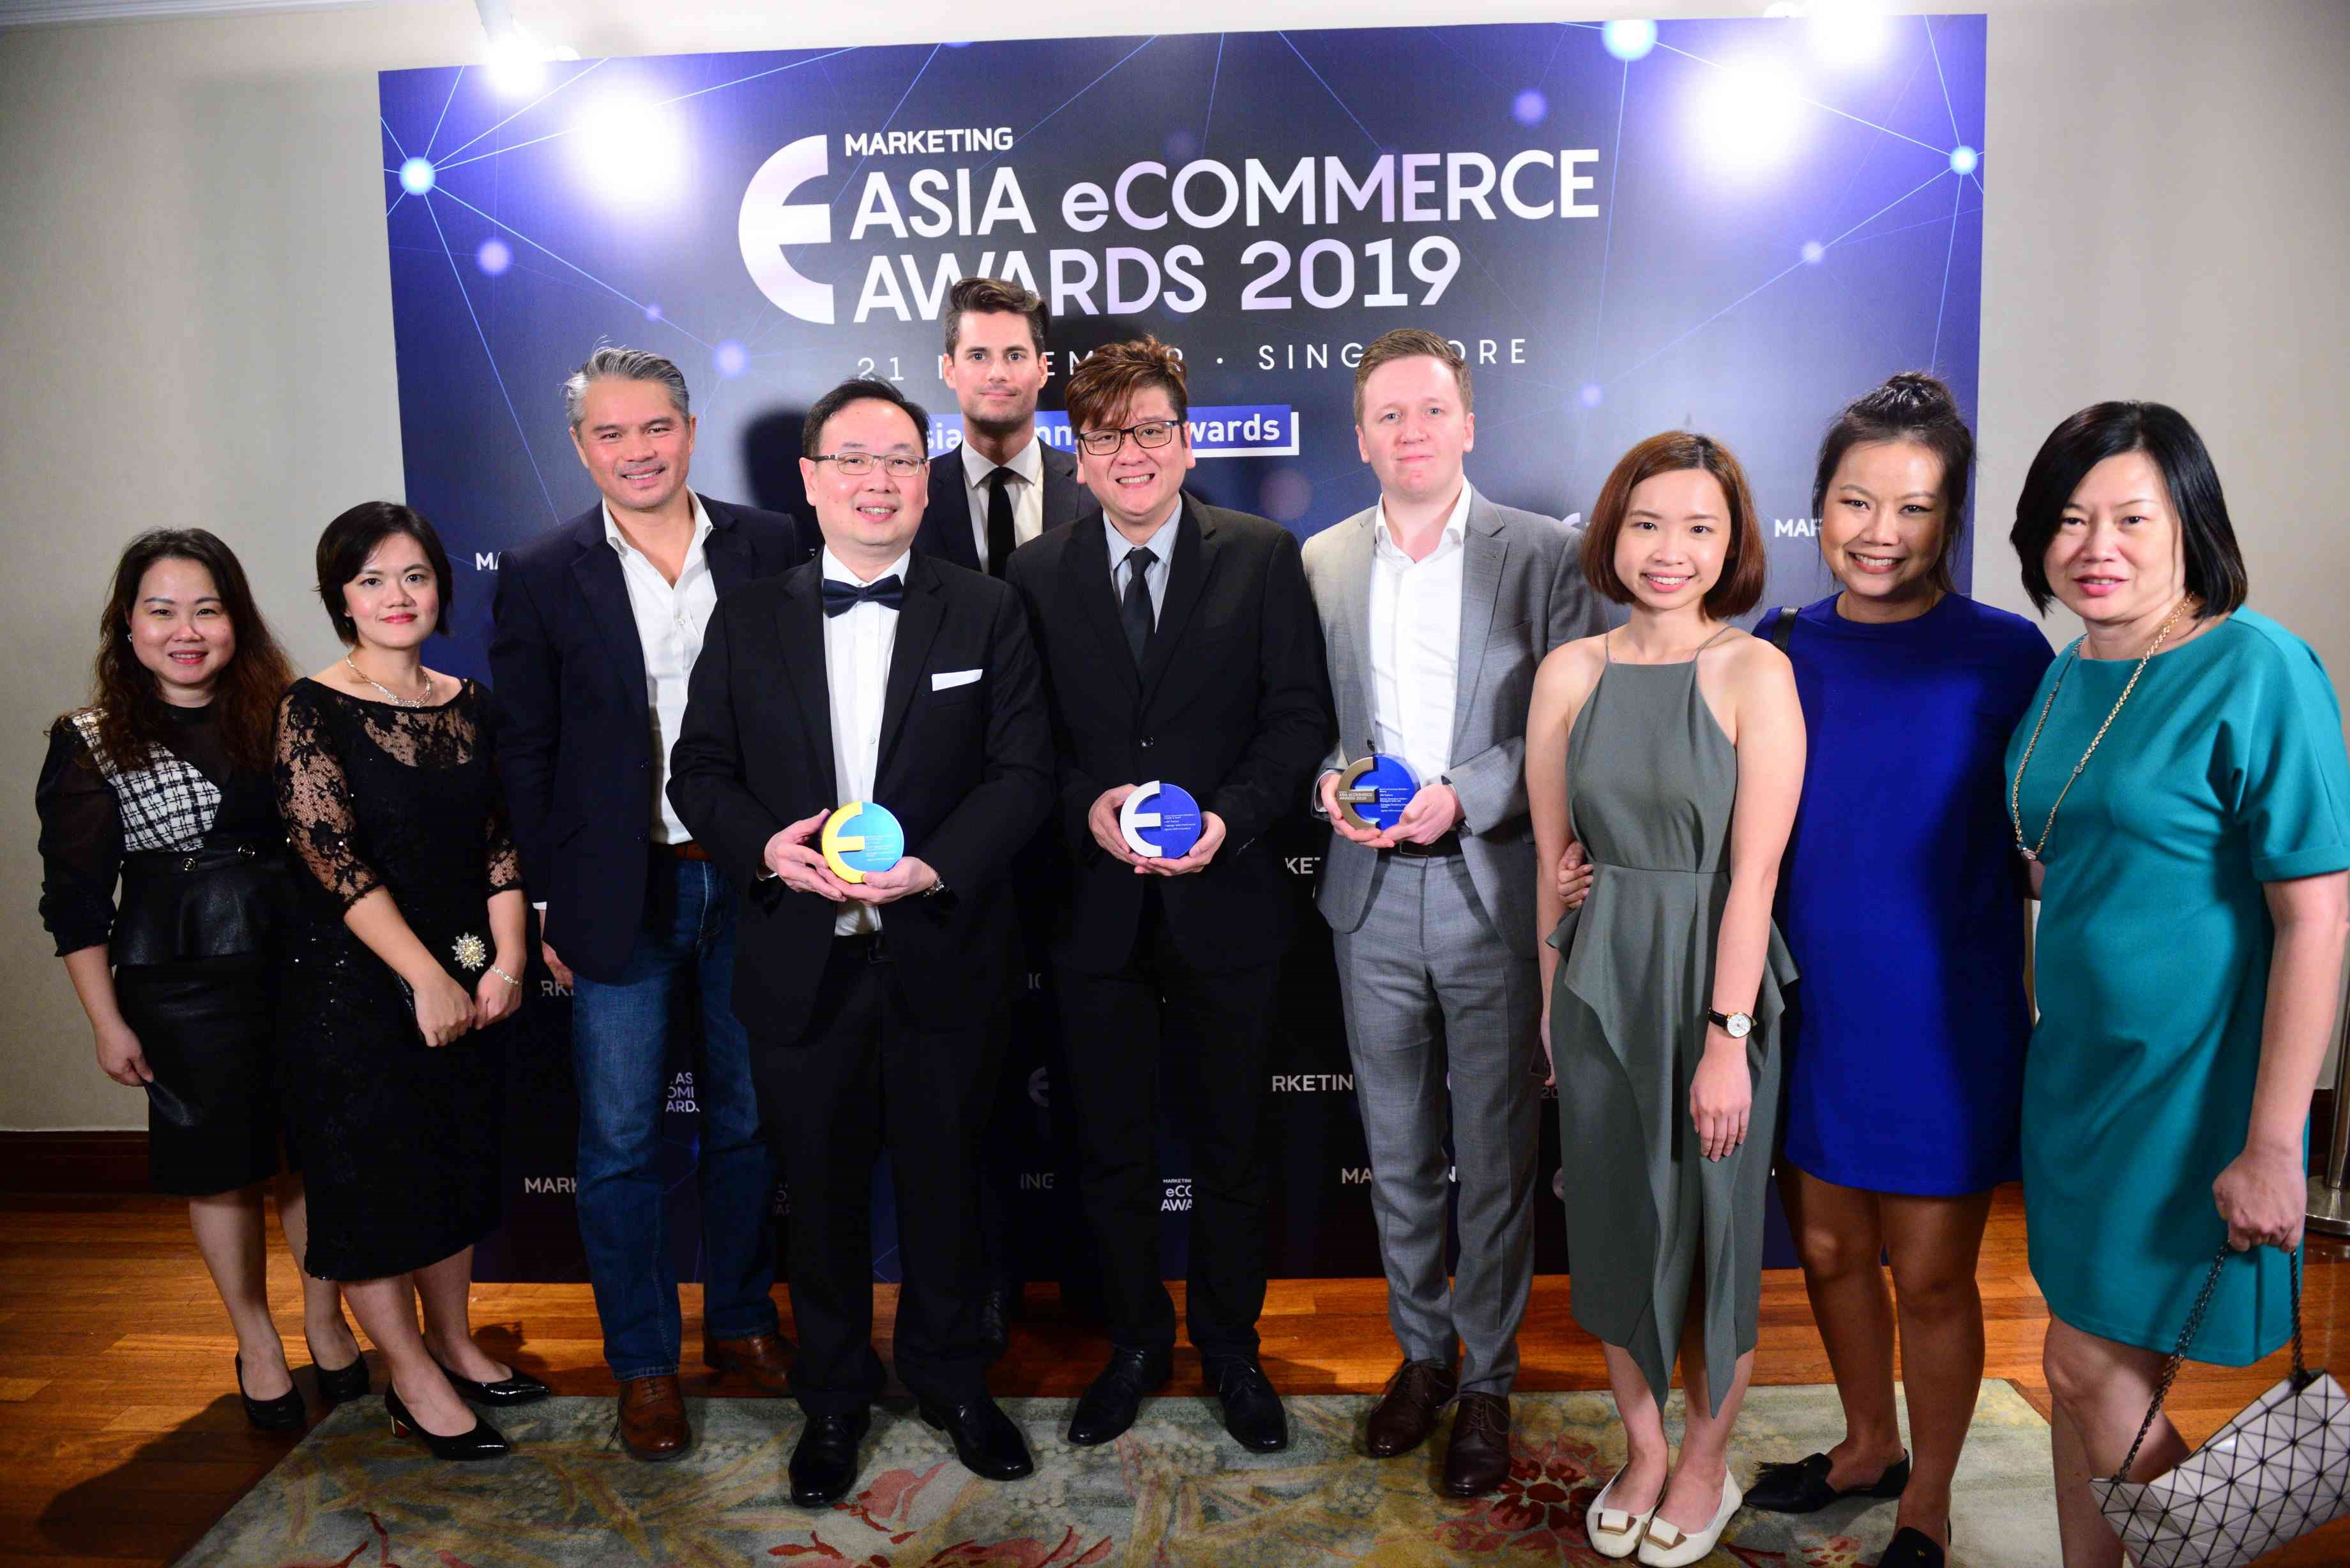 DKSH wins one Gold, two Silver and two Bronze trophies at the 2019 Asia eCommerce Awards